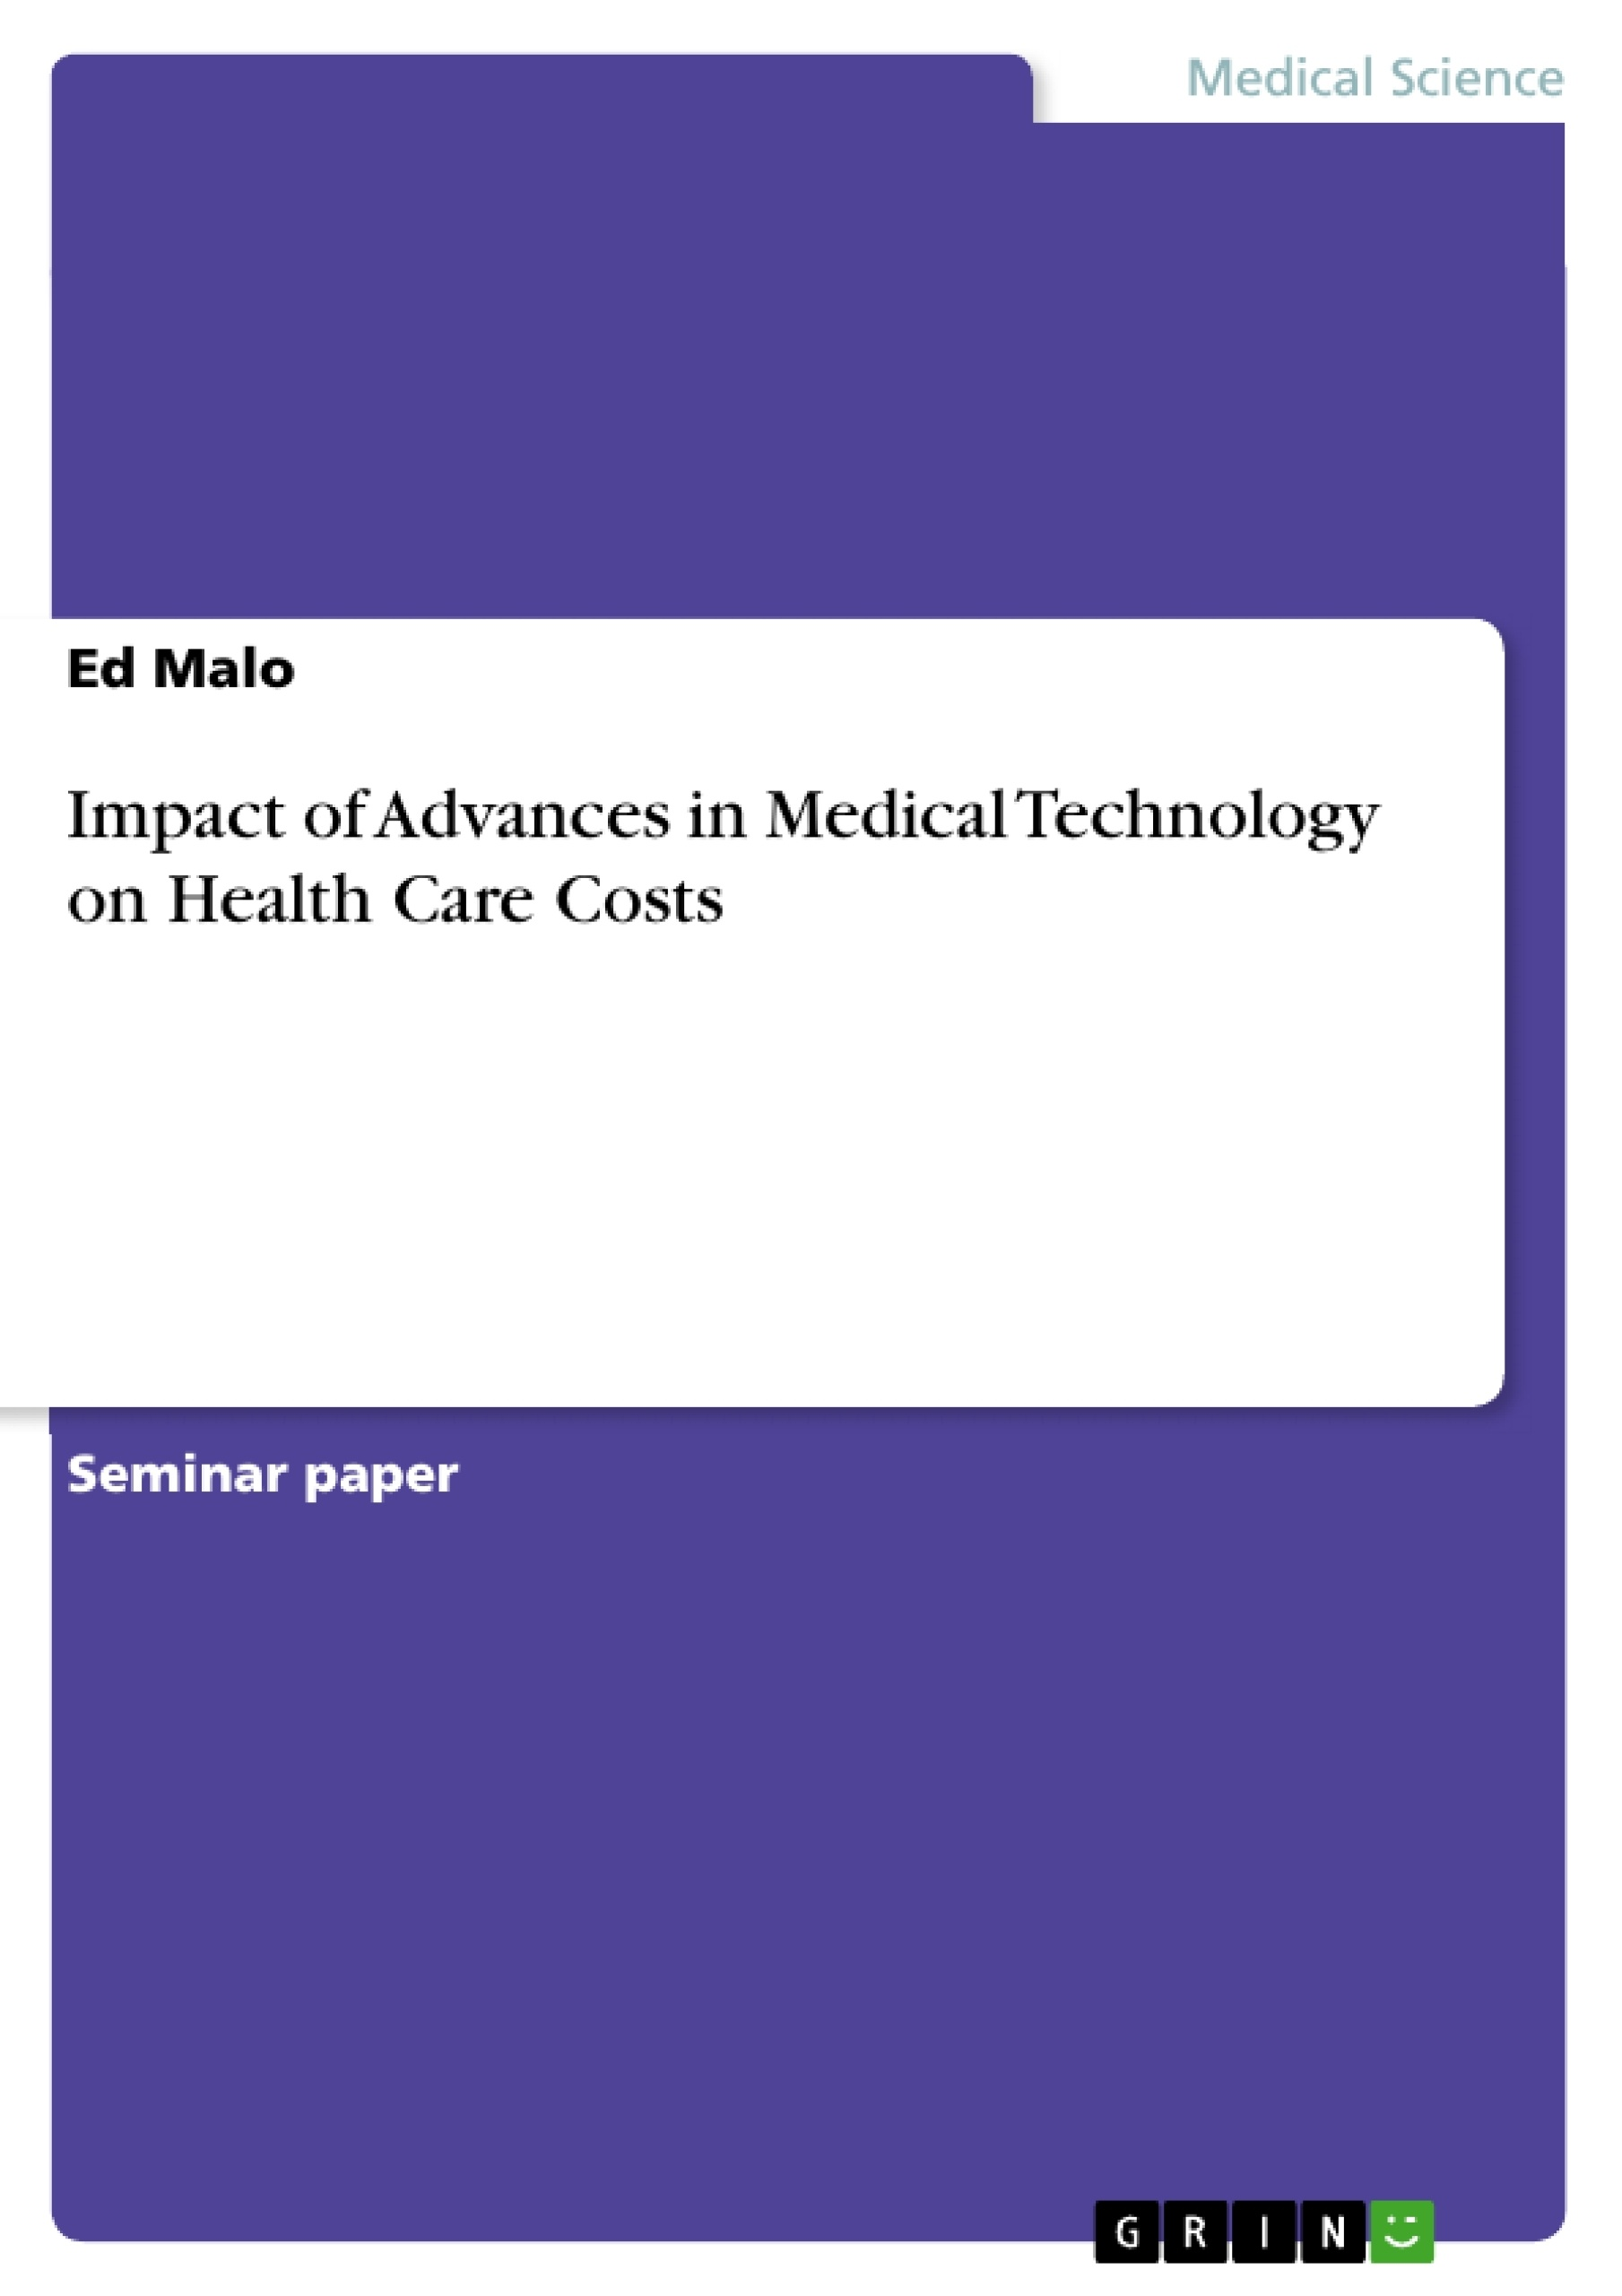 how technology shapes health care essay Free health care system papers, essays, and research papers despite these changes, adoption of information technology has been slow in health care workplaces.